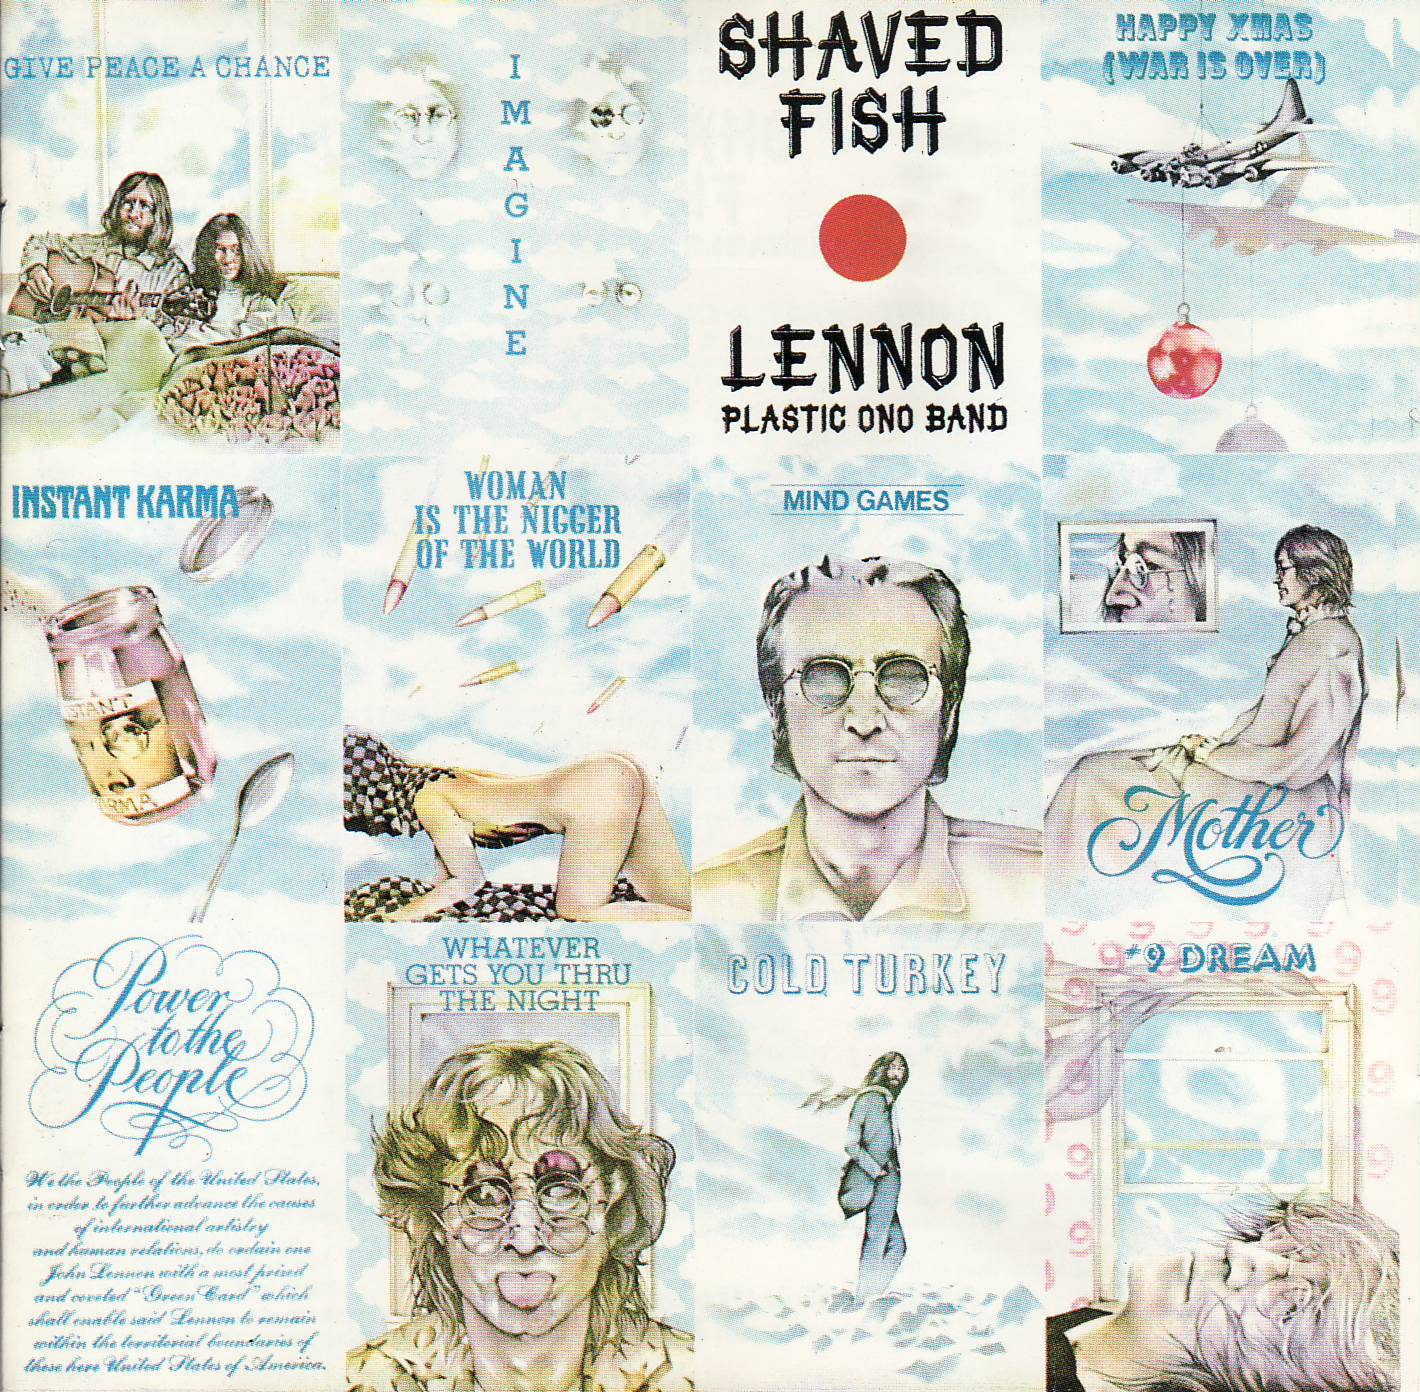 john lennon plastic ono band shaved fish vinyl lover